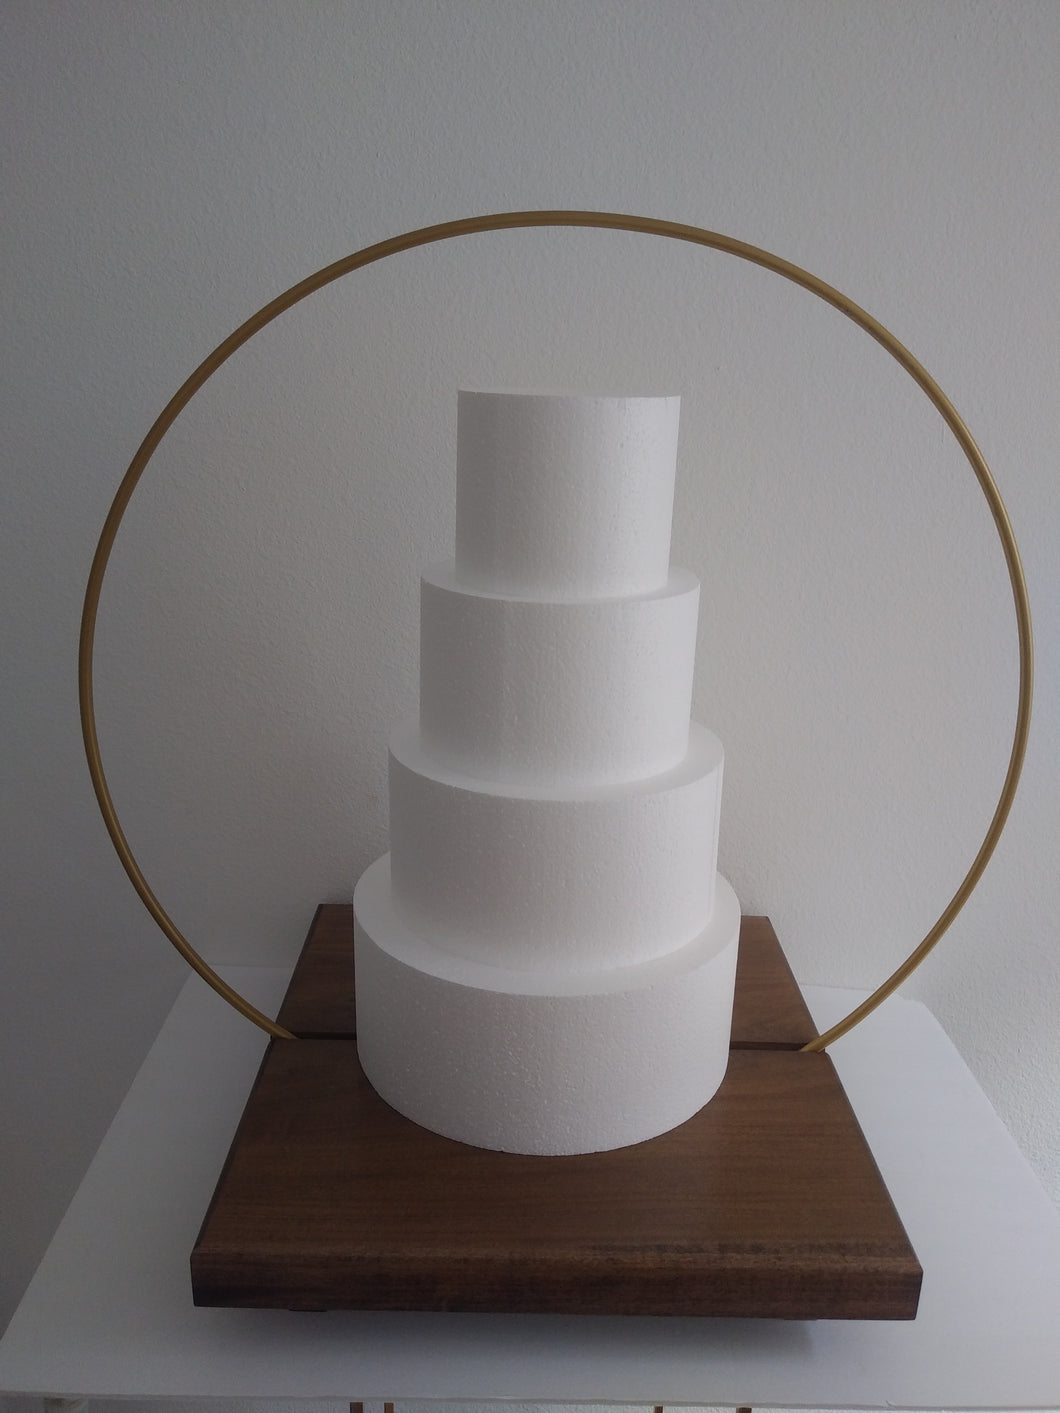 20 inch Cake Hoop Stand with powder coated steel hoop options